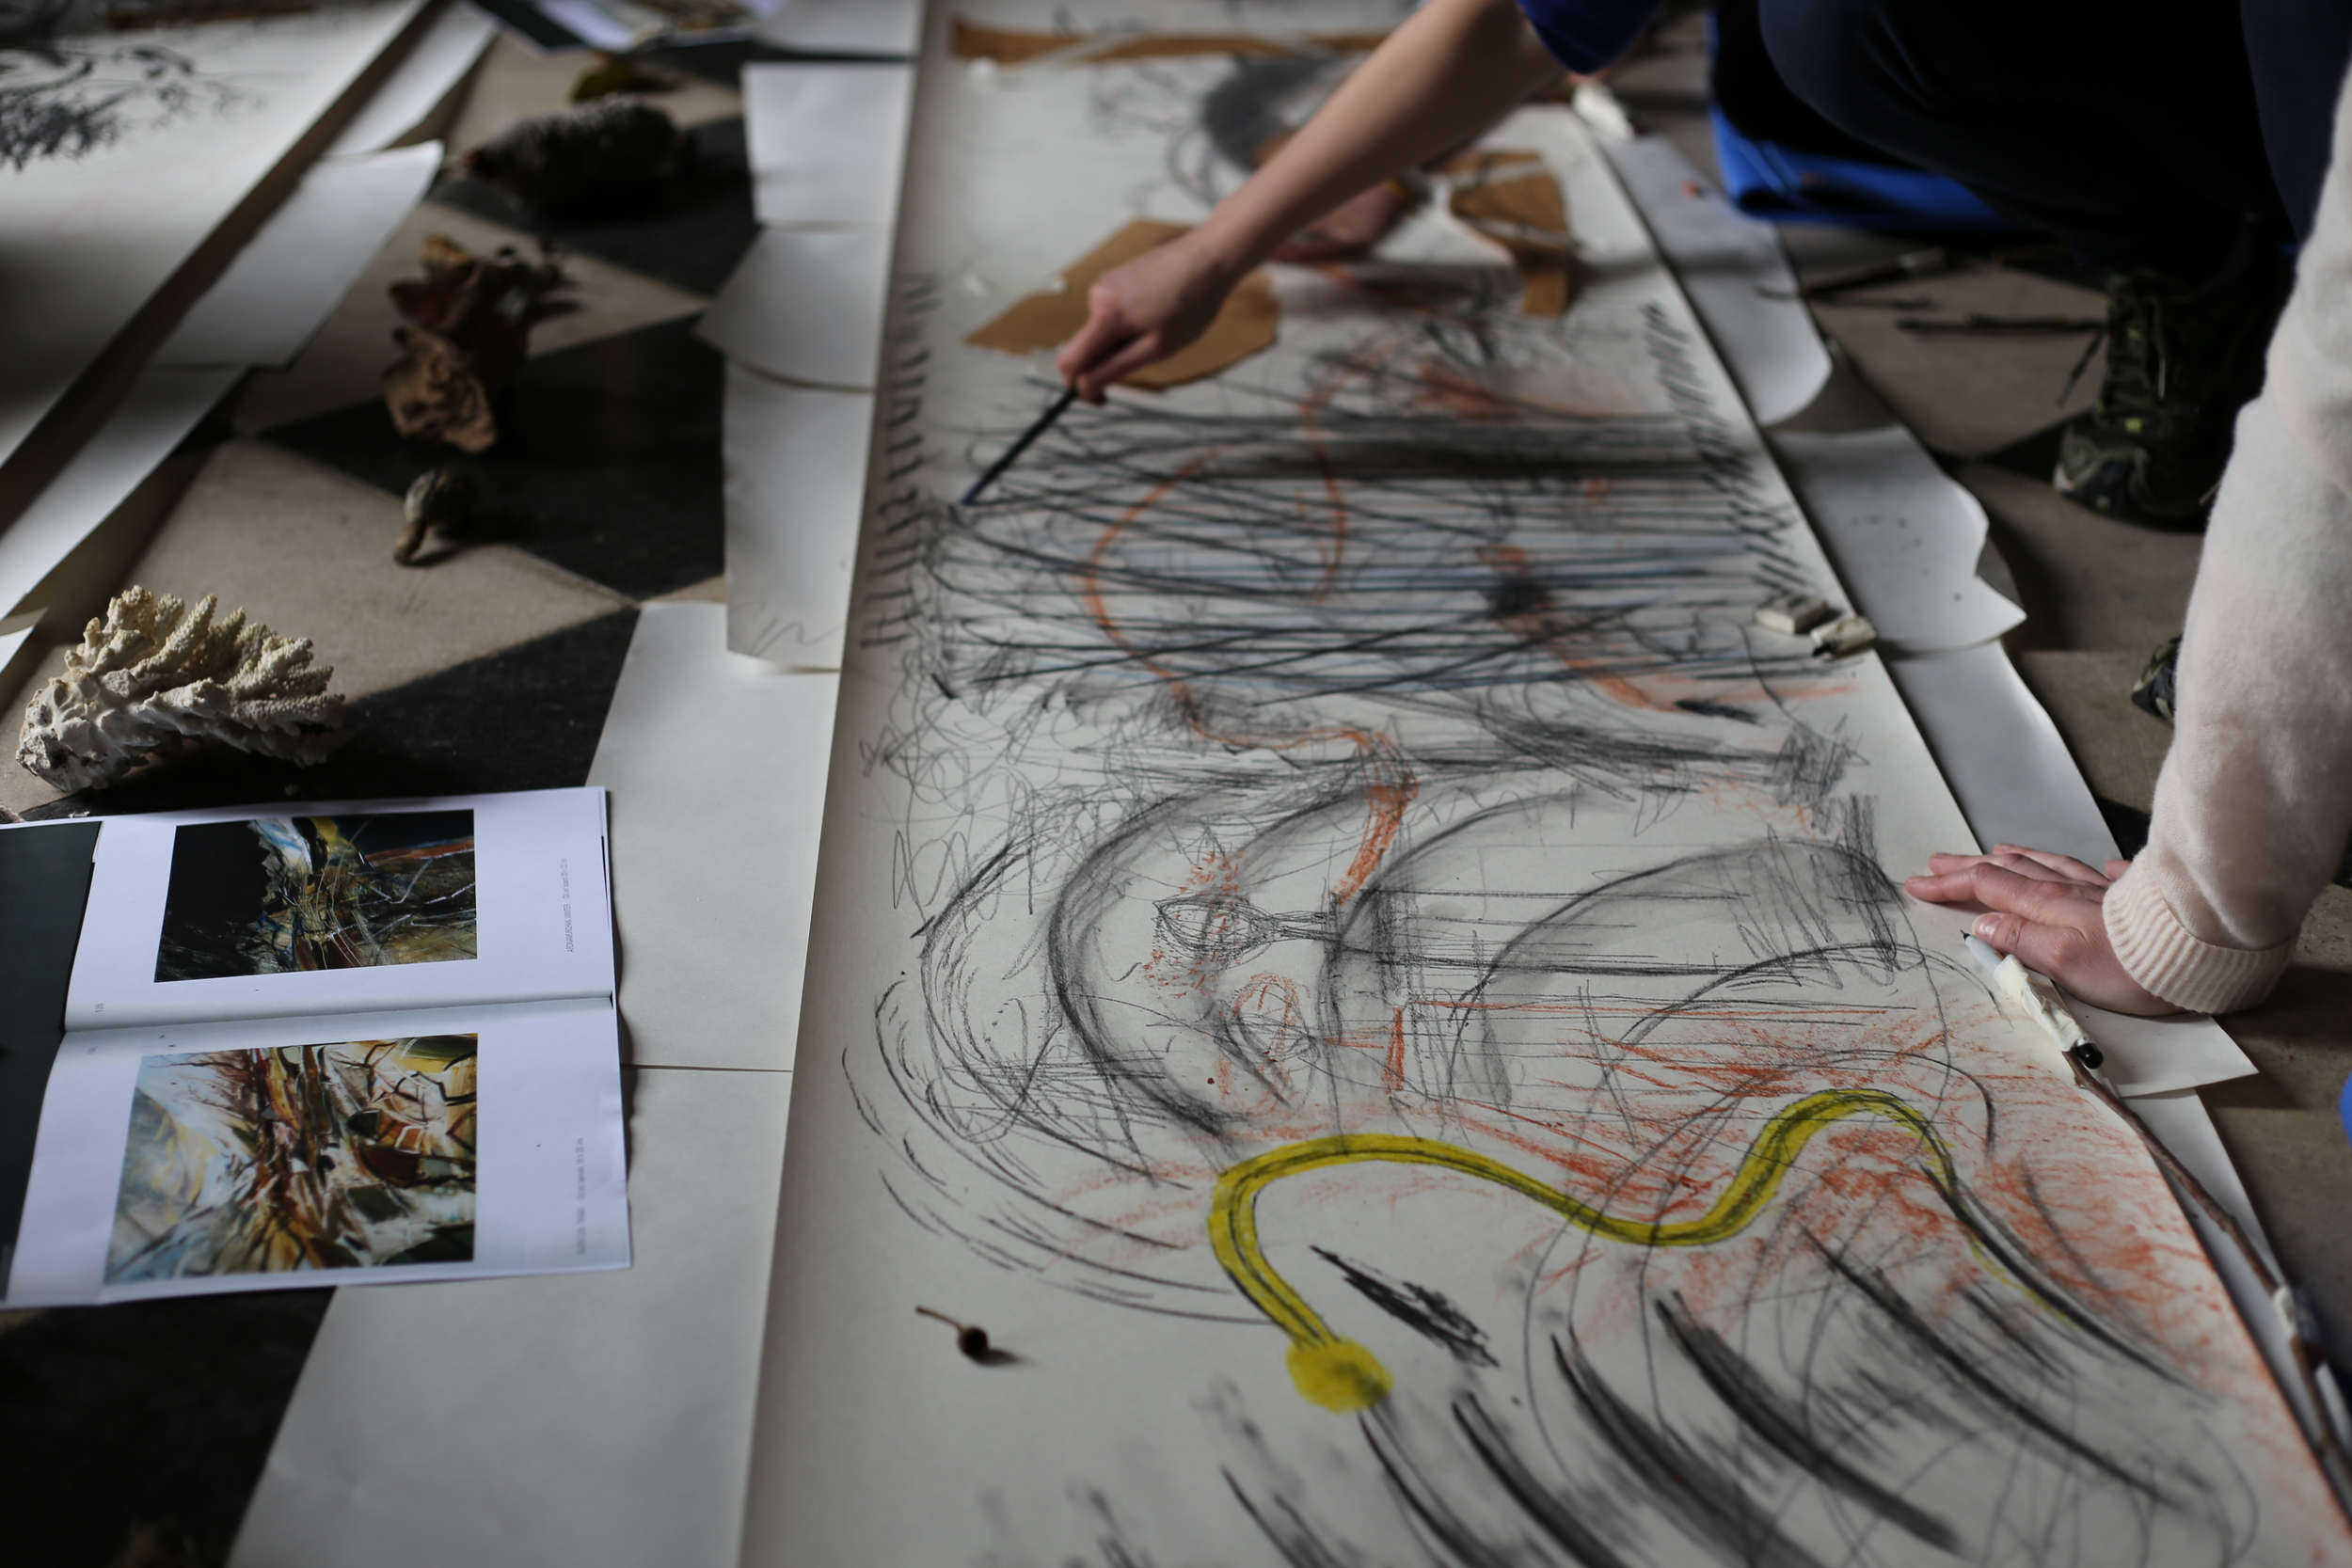 A creative drawing workshop led by Jessica and Lottie